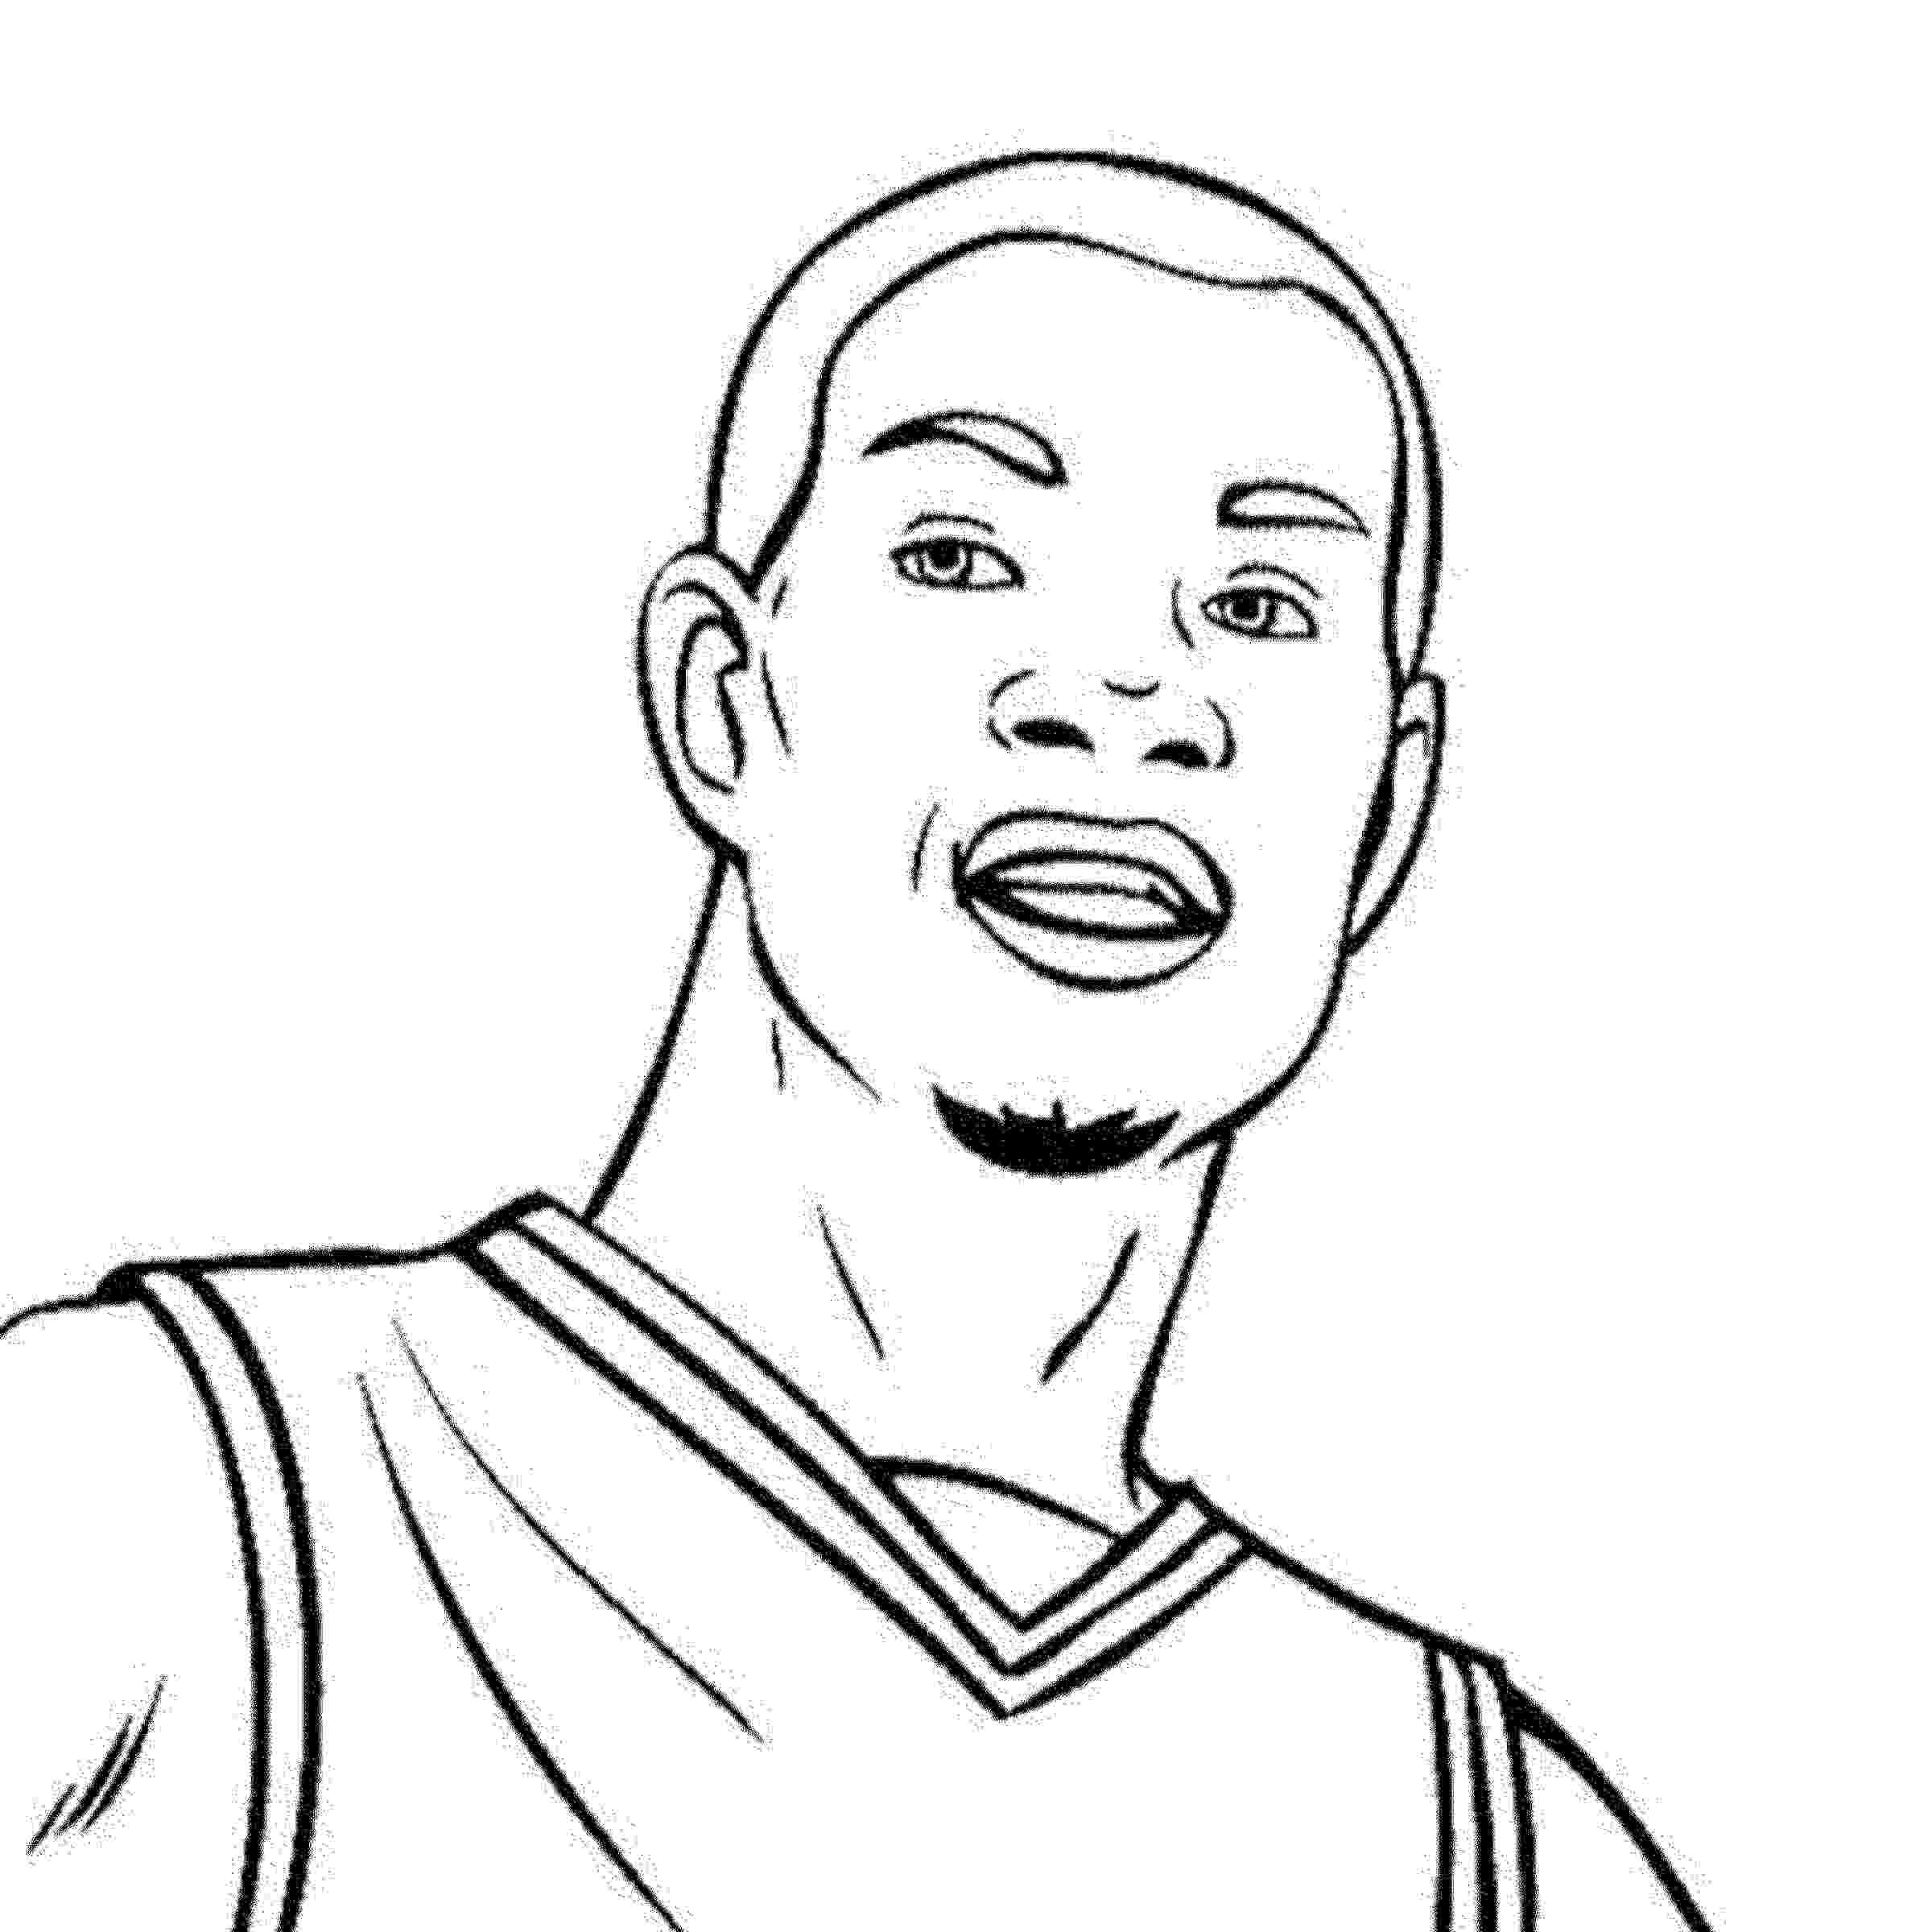 kd coloring pages kd 8 shoes coloring pages coloring pages kd